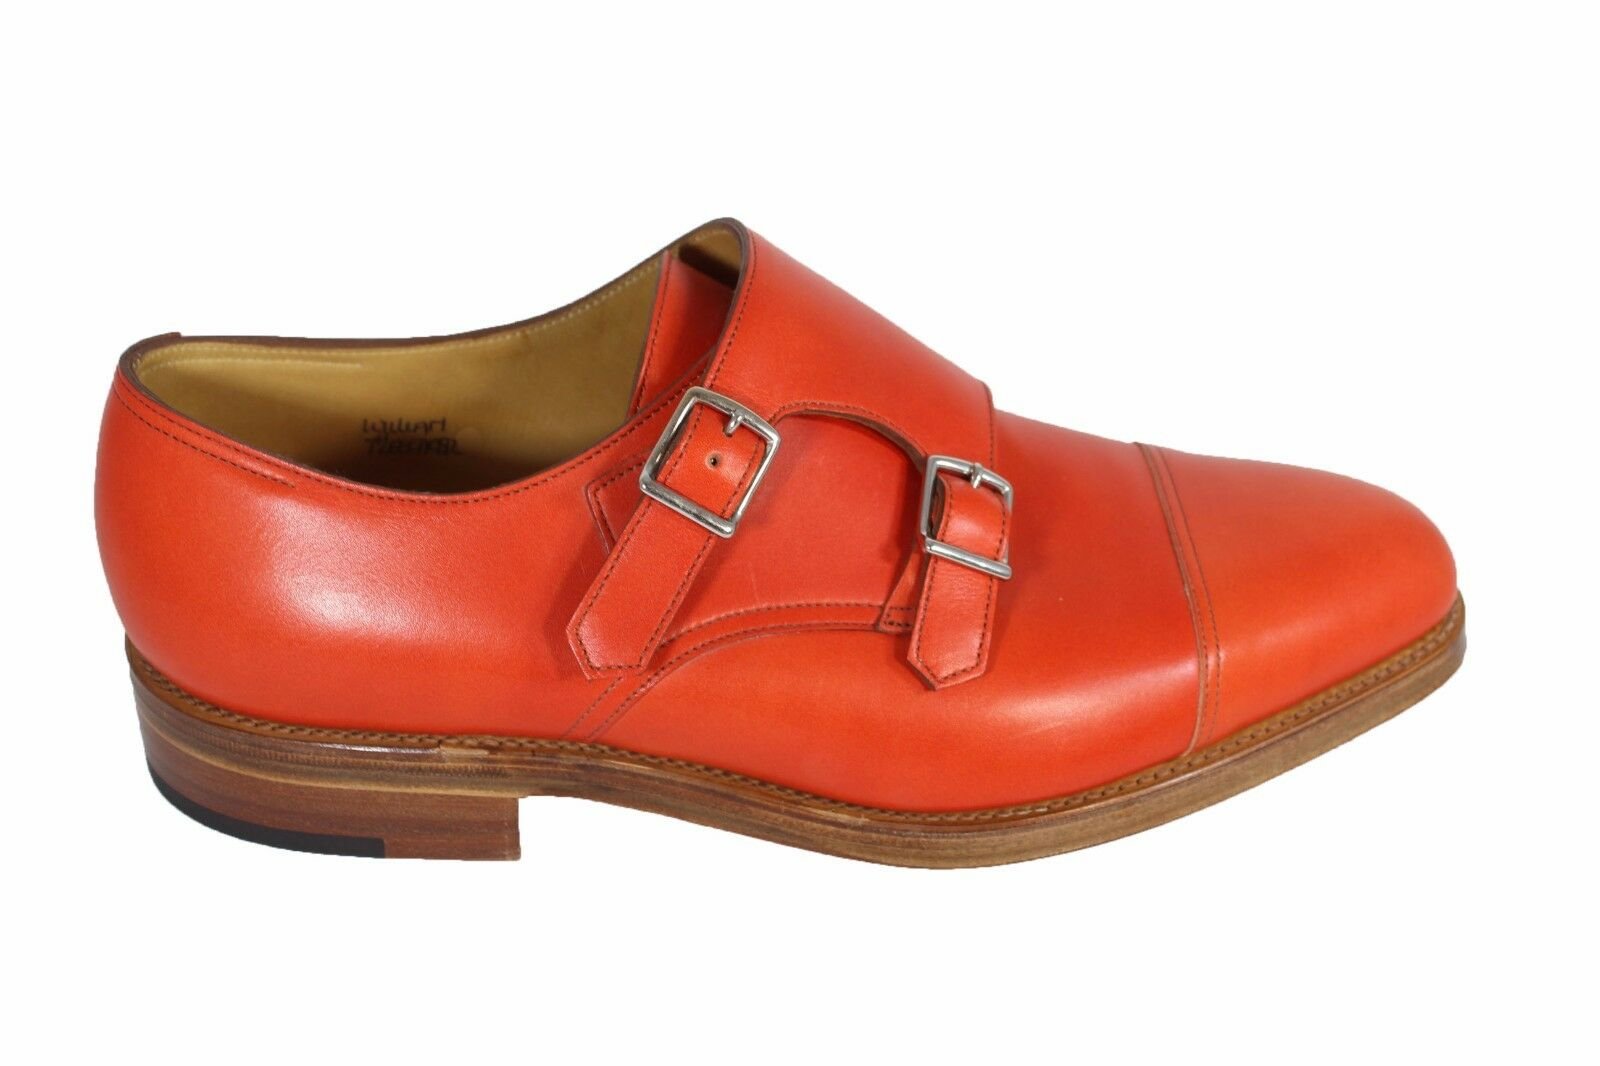 JOHN LOBB William leather monk strap con scarpe eleganti in pelle con strap suola in cuoio ed8d8e